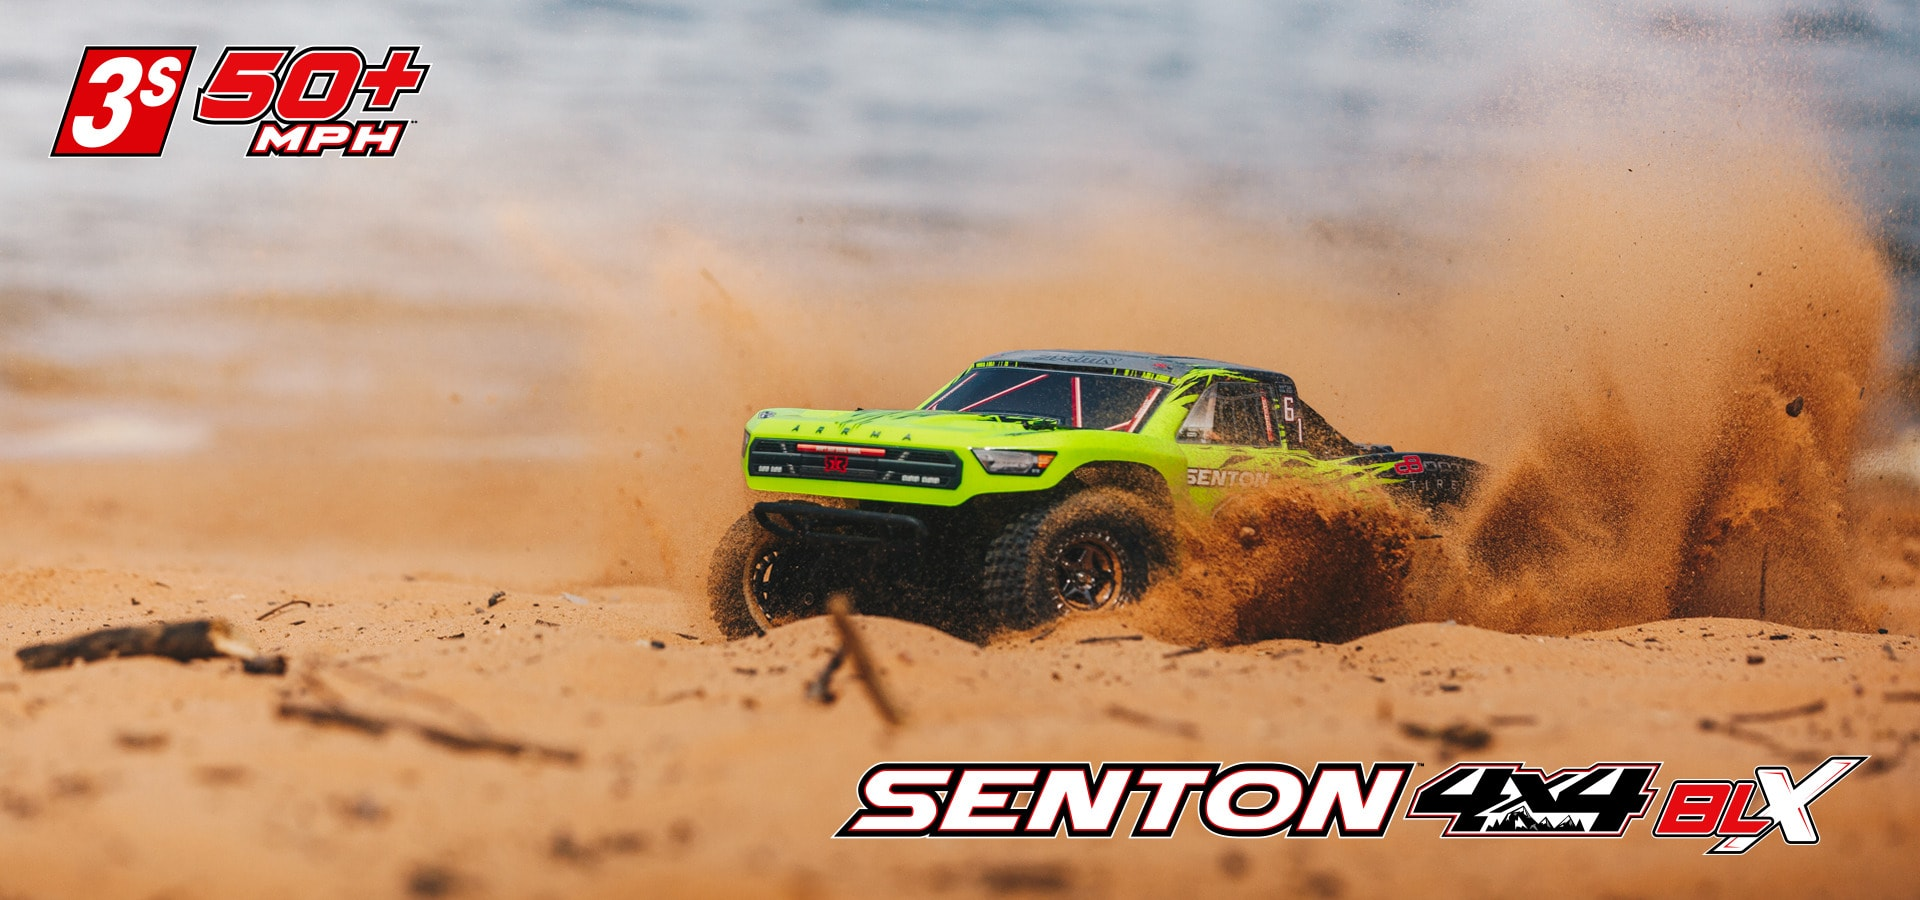 See it in Action: ARRMA Senton 4×4 3S BLX [Video]